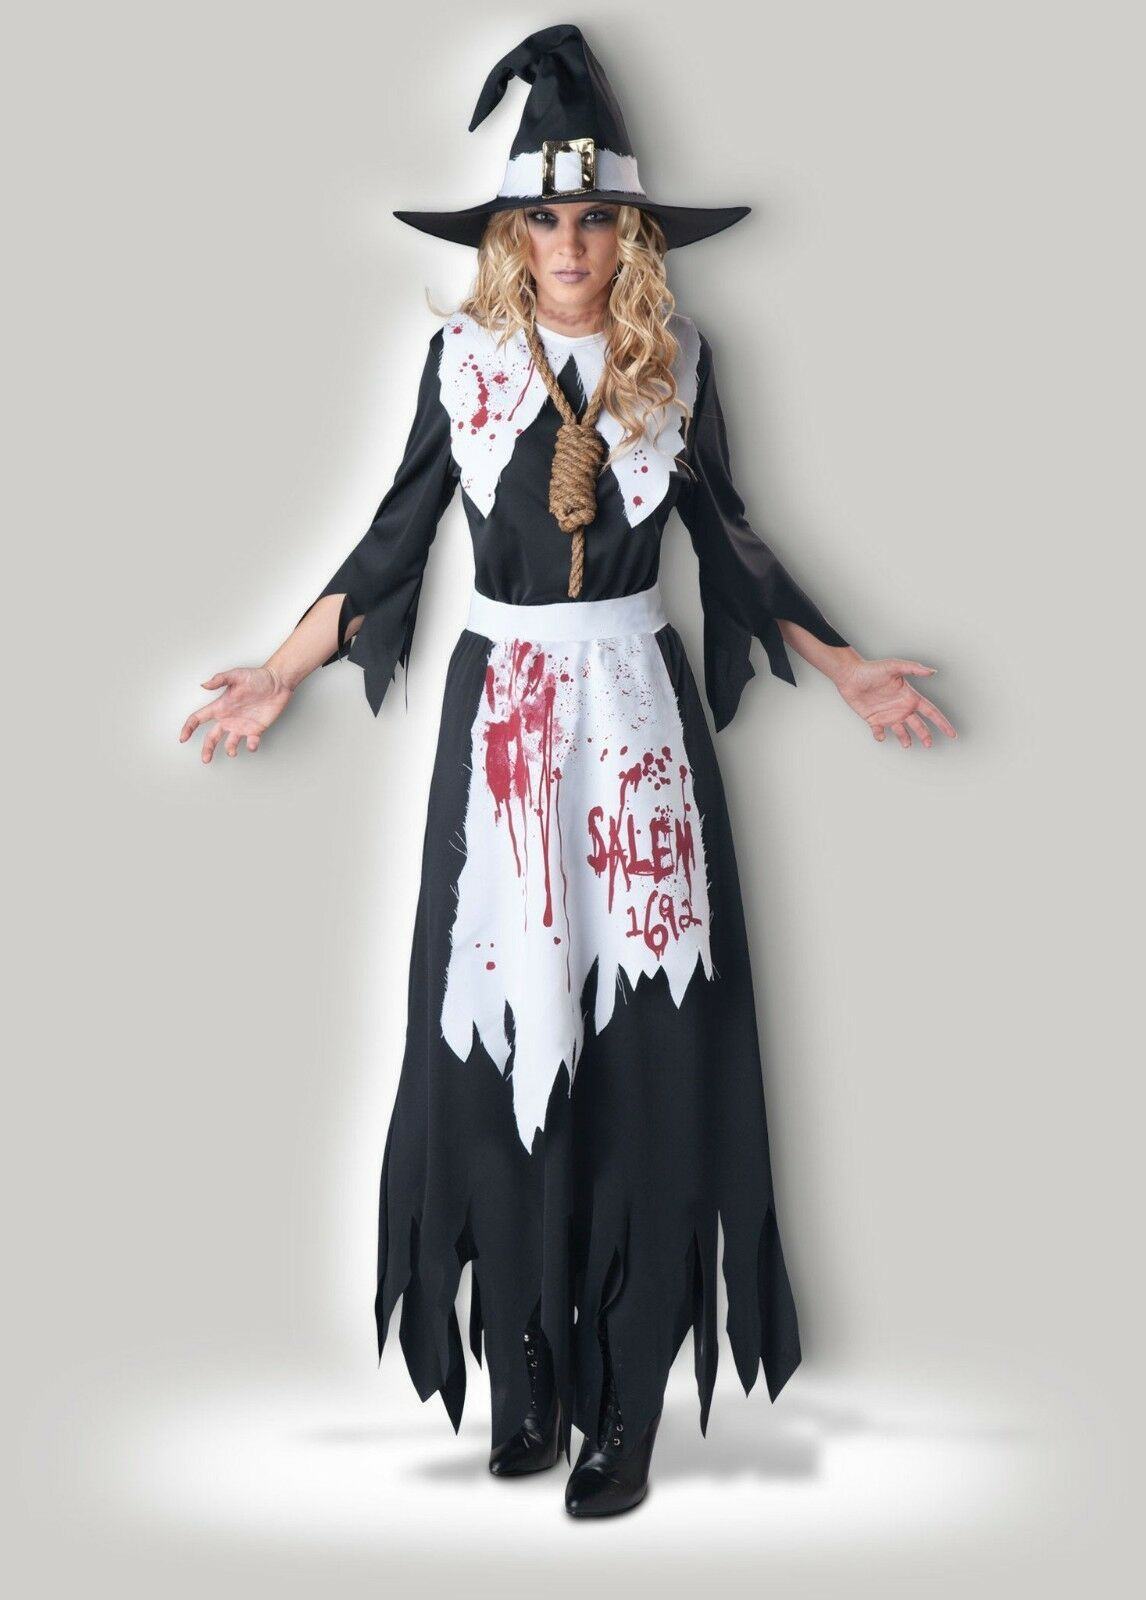 Primary image for InCharacter Salem Witch Bridget Bishop  Adult Womens Halloween Costume CF11050